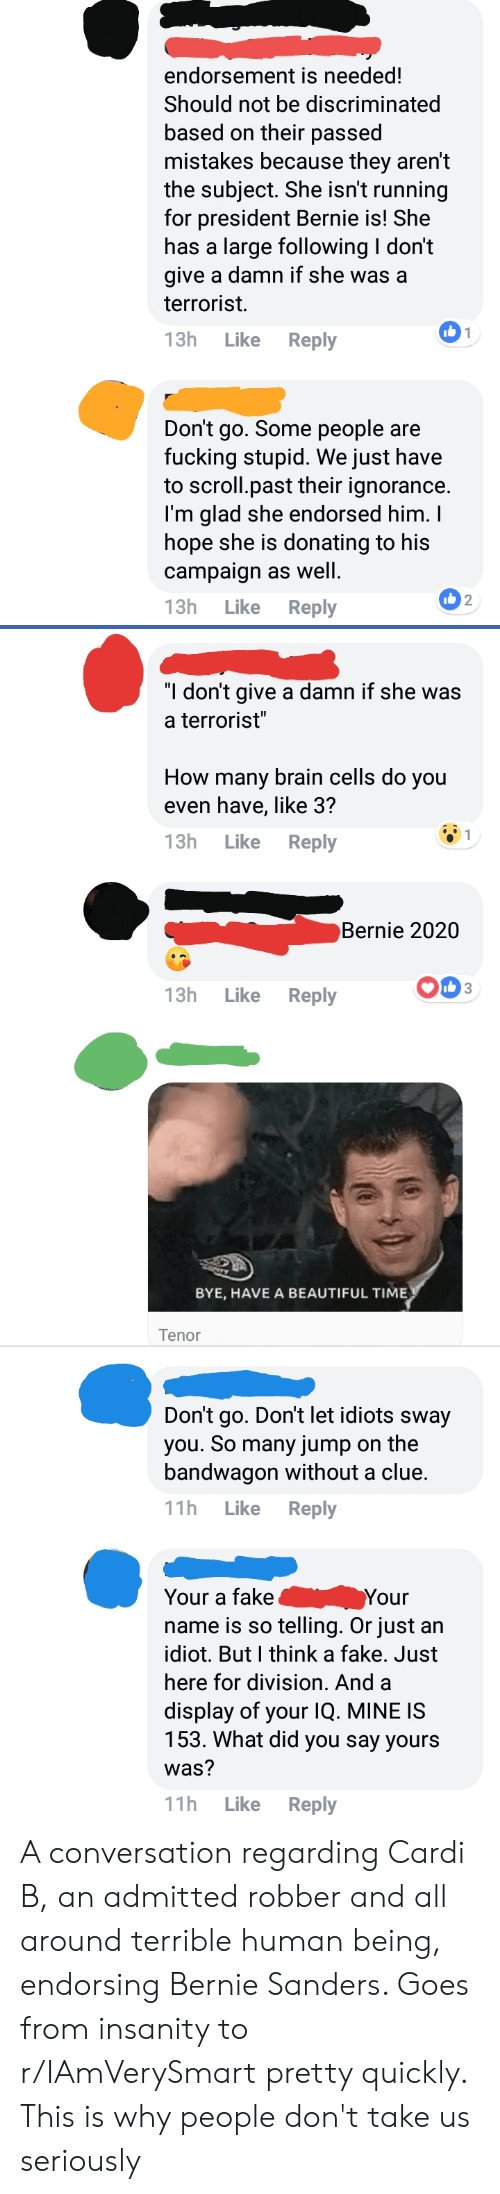 """Beautiful, Bernie Sanders, and Fake: endorsement is needed!  Should not be discriminated  based on their passed  mistakes because they aren't  the subject. She isn't running  for president Bernie is! She  has a large following I don't  give a damn if she was a  terrorist.  13h Like Reply  Don't go. Some people are  fucking stupid. We just have  to scroll.past their ignorance.  I'm glad she endorsed him.I  hope she is donating to his  campaign as well.  13h Like Reply  2  """"I don't give a damn if she was  a terrorist""""  How many brain cells do you  even have, like 3?  13h Like Reply  Bernie 2020  OD  13h Like Reply  BYE, HAVE A BEAUTIFUL TIME  Tenor  Don't go. Don't let idiots sway  you. So many jump on the  bandwagon without a clue  11h Like Reply  Your a fake  name is so telling. Or just an  idiot. But I think a fake. Just  here for division. And a  display of your IQ. MINE IS  153. What did you say yours  was?  1h Like Reply  Your A conversation regarding Cardi B, an admitted robber and all around terrible human being, endorsing Bernie Sanders. Goes from insanity to r/IAmVerySmart pretty quickly. This is why people don't take us seriously"""